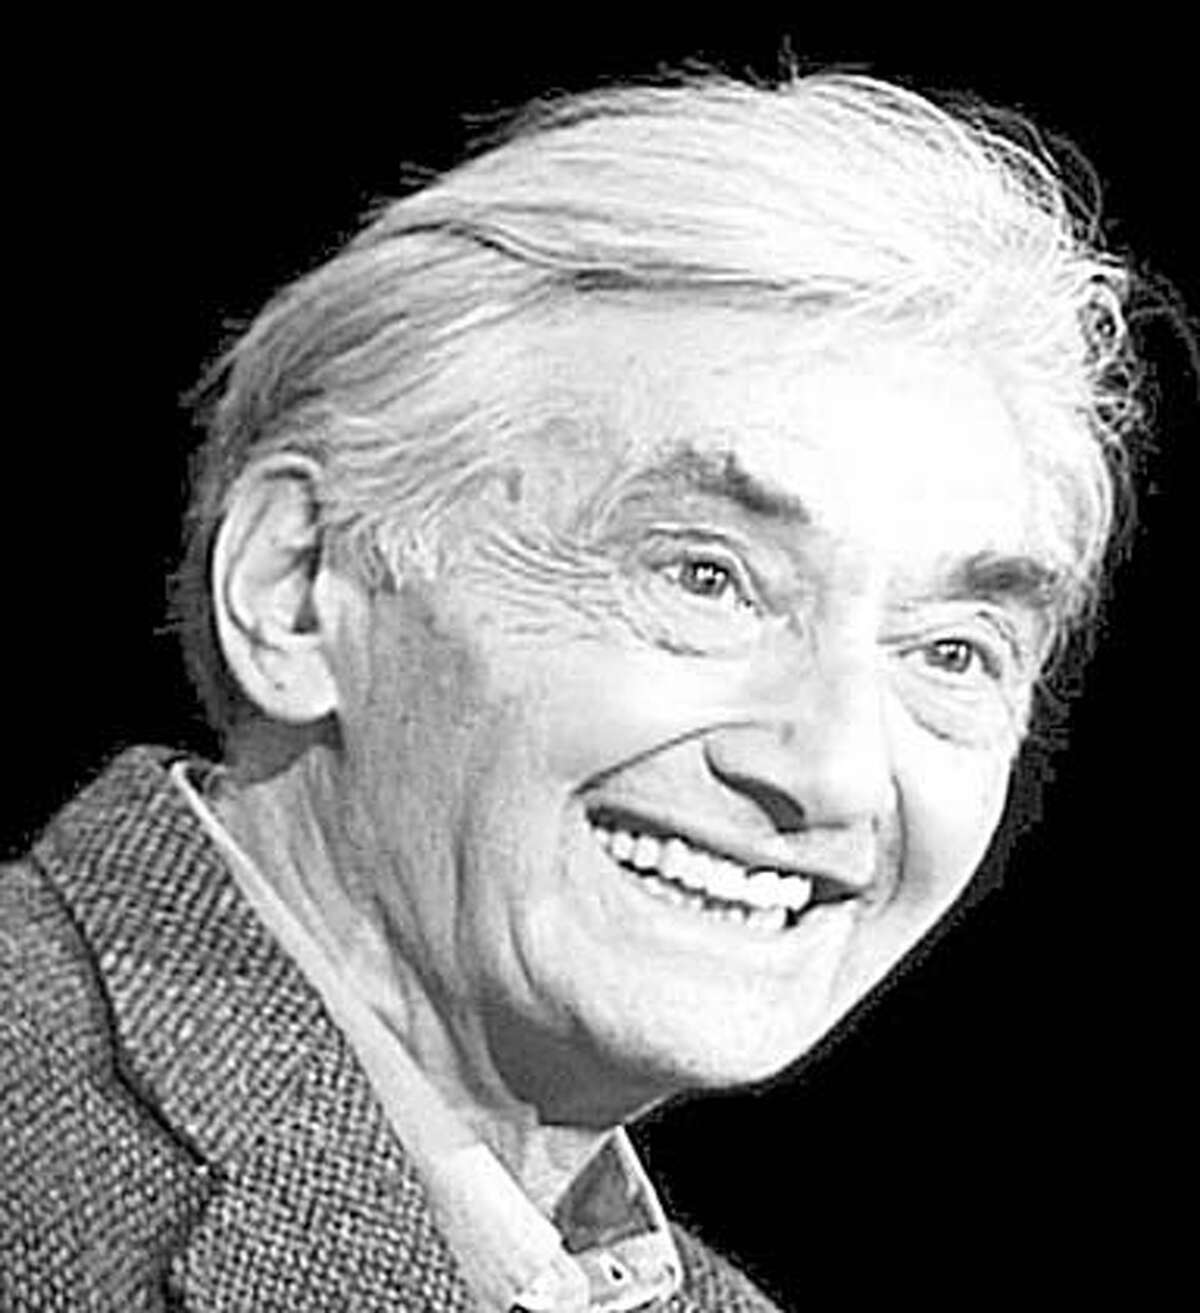 Howard Zinn is a professor emeritus at Boston University and author of